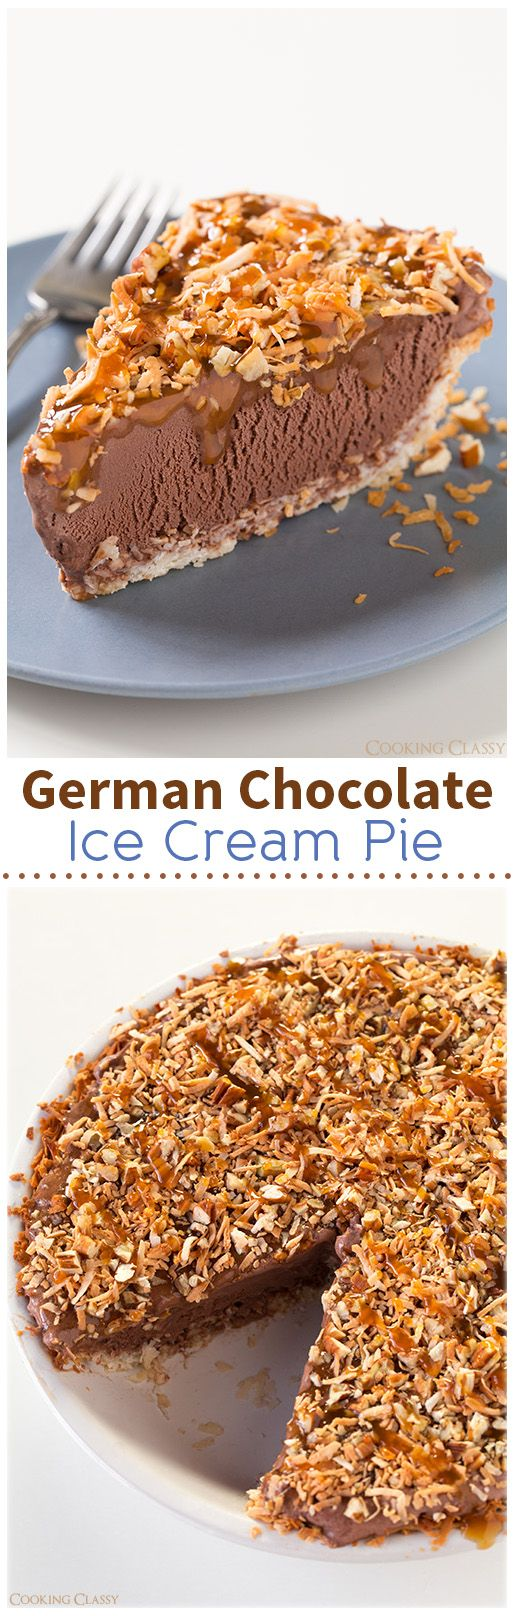 ... Complete Delicious, Ice Cream Pies, German Chocolate Ice Cream Pie